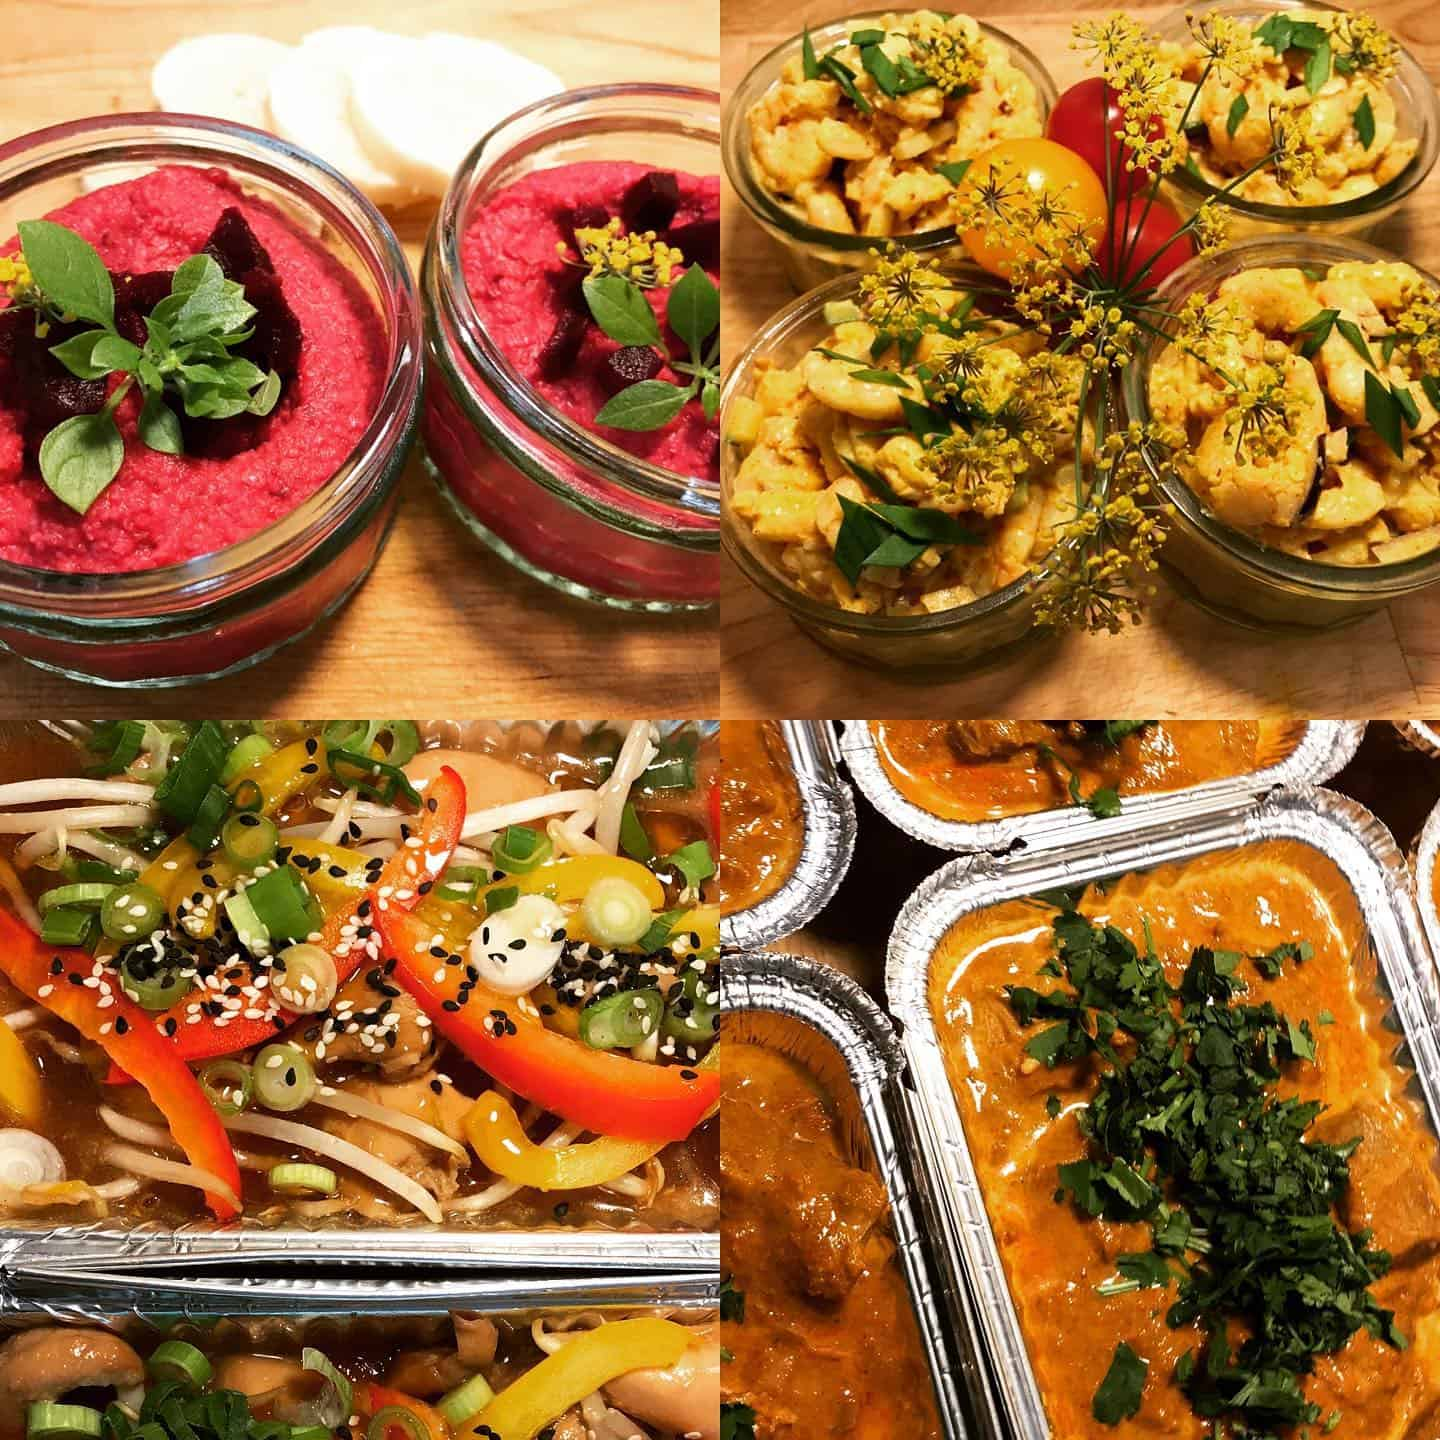 Restaurant quality food delivered to your door by Foxes Catering